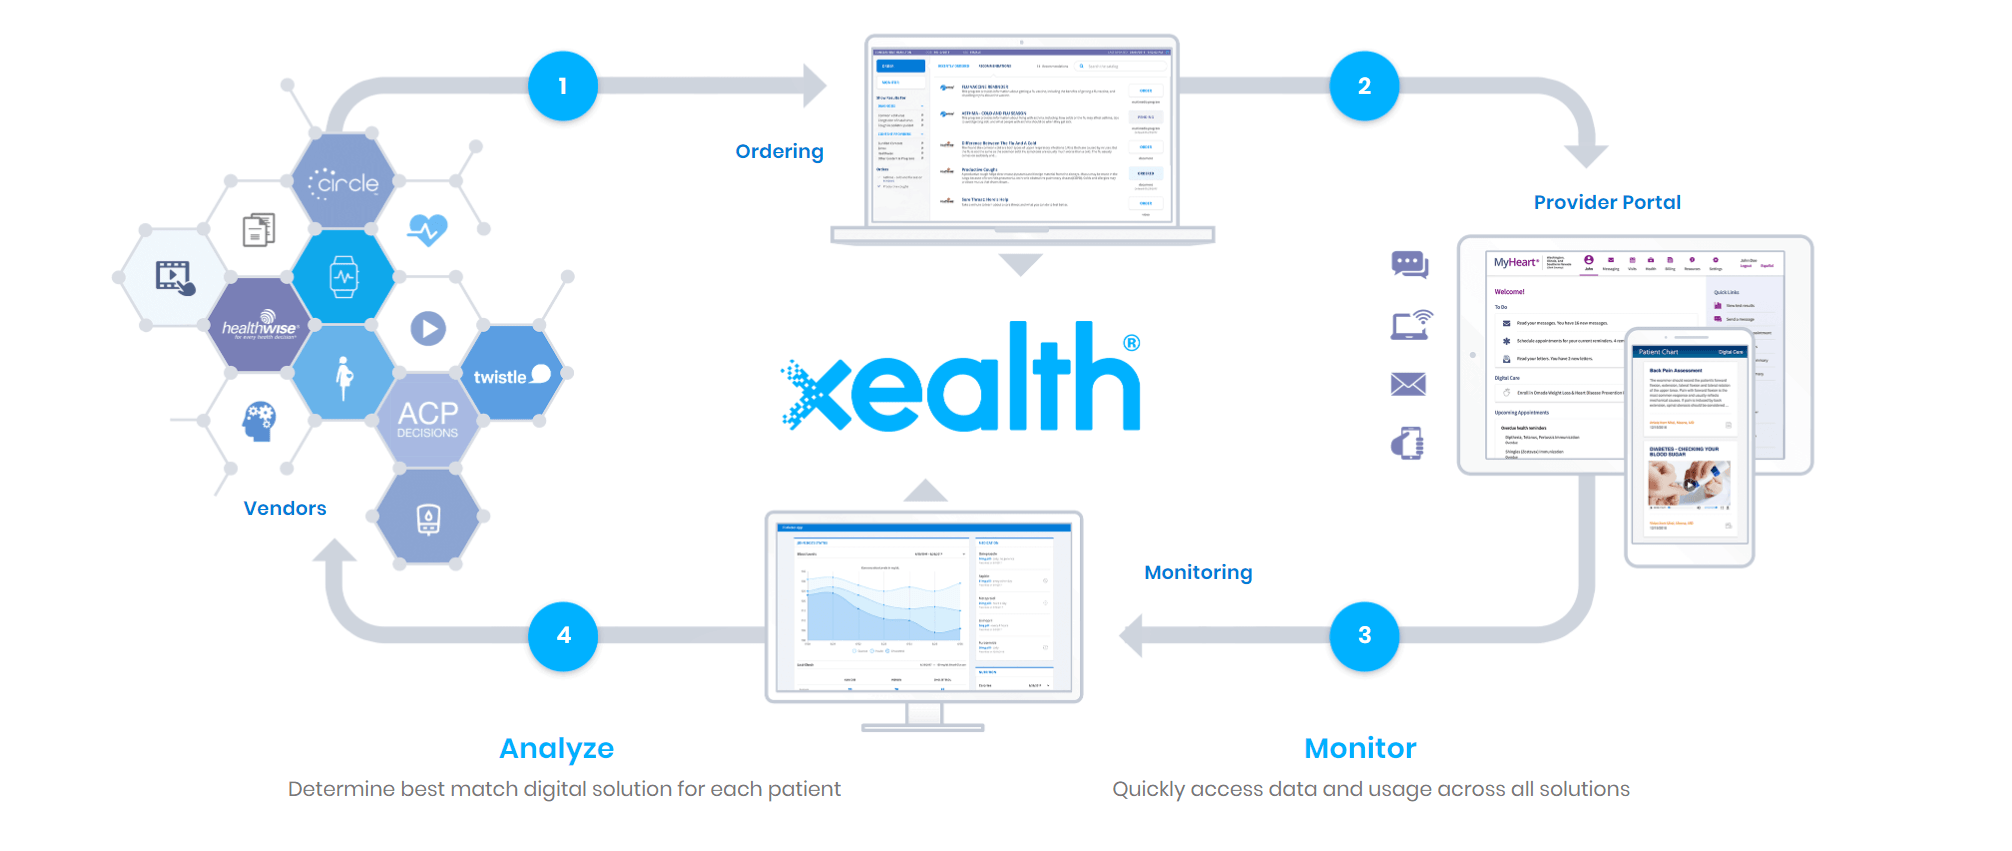 Cerner Invests in Xealth to Jointly Develop Digital Health Solutions for Clinicians